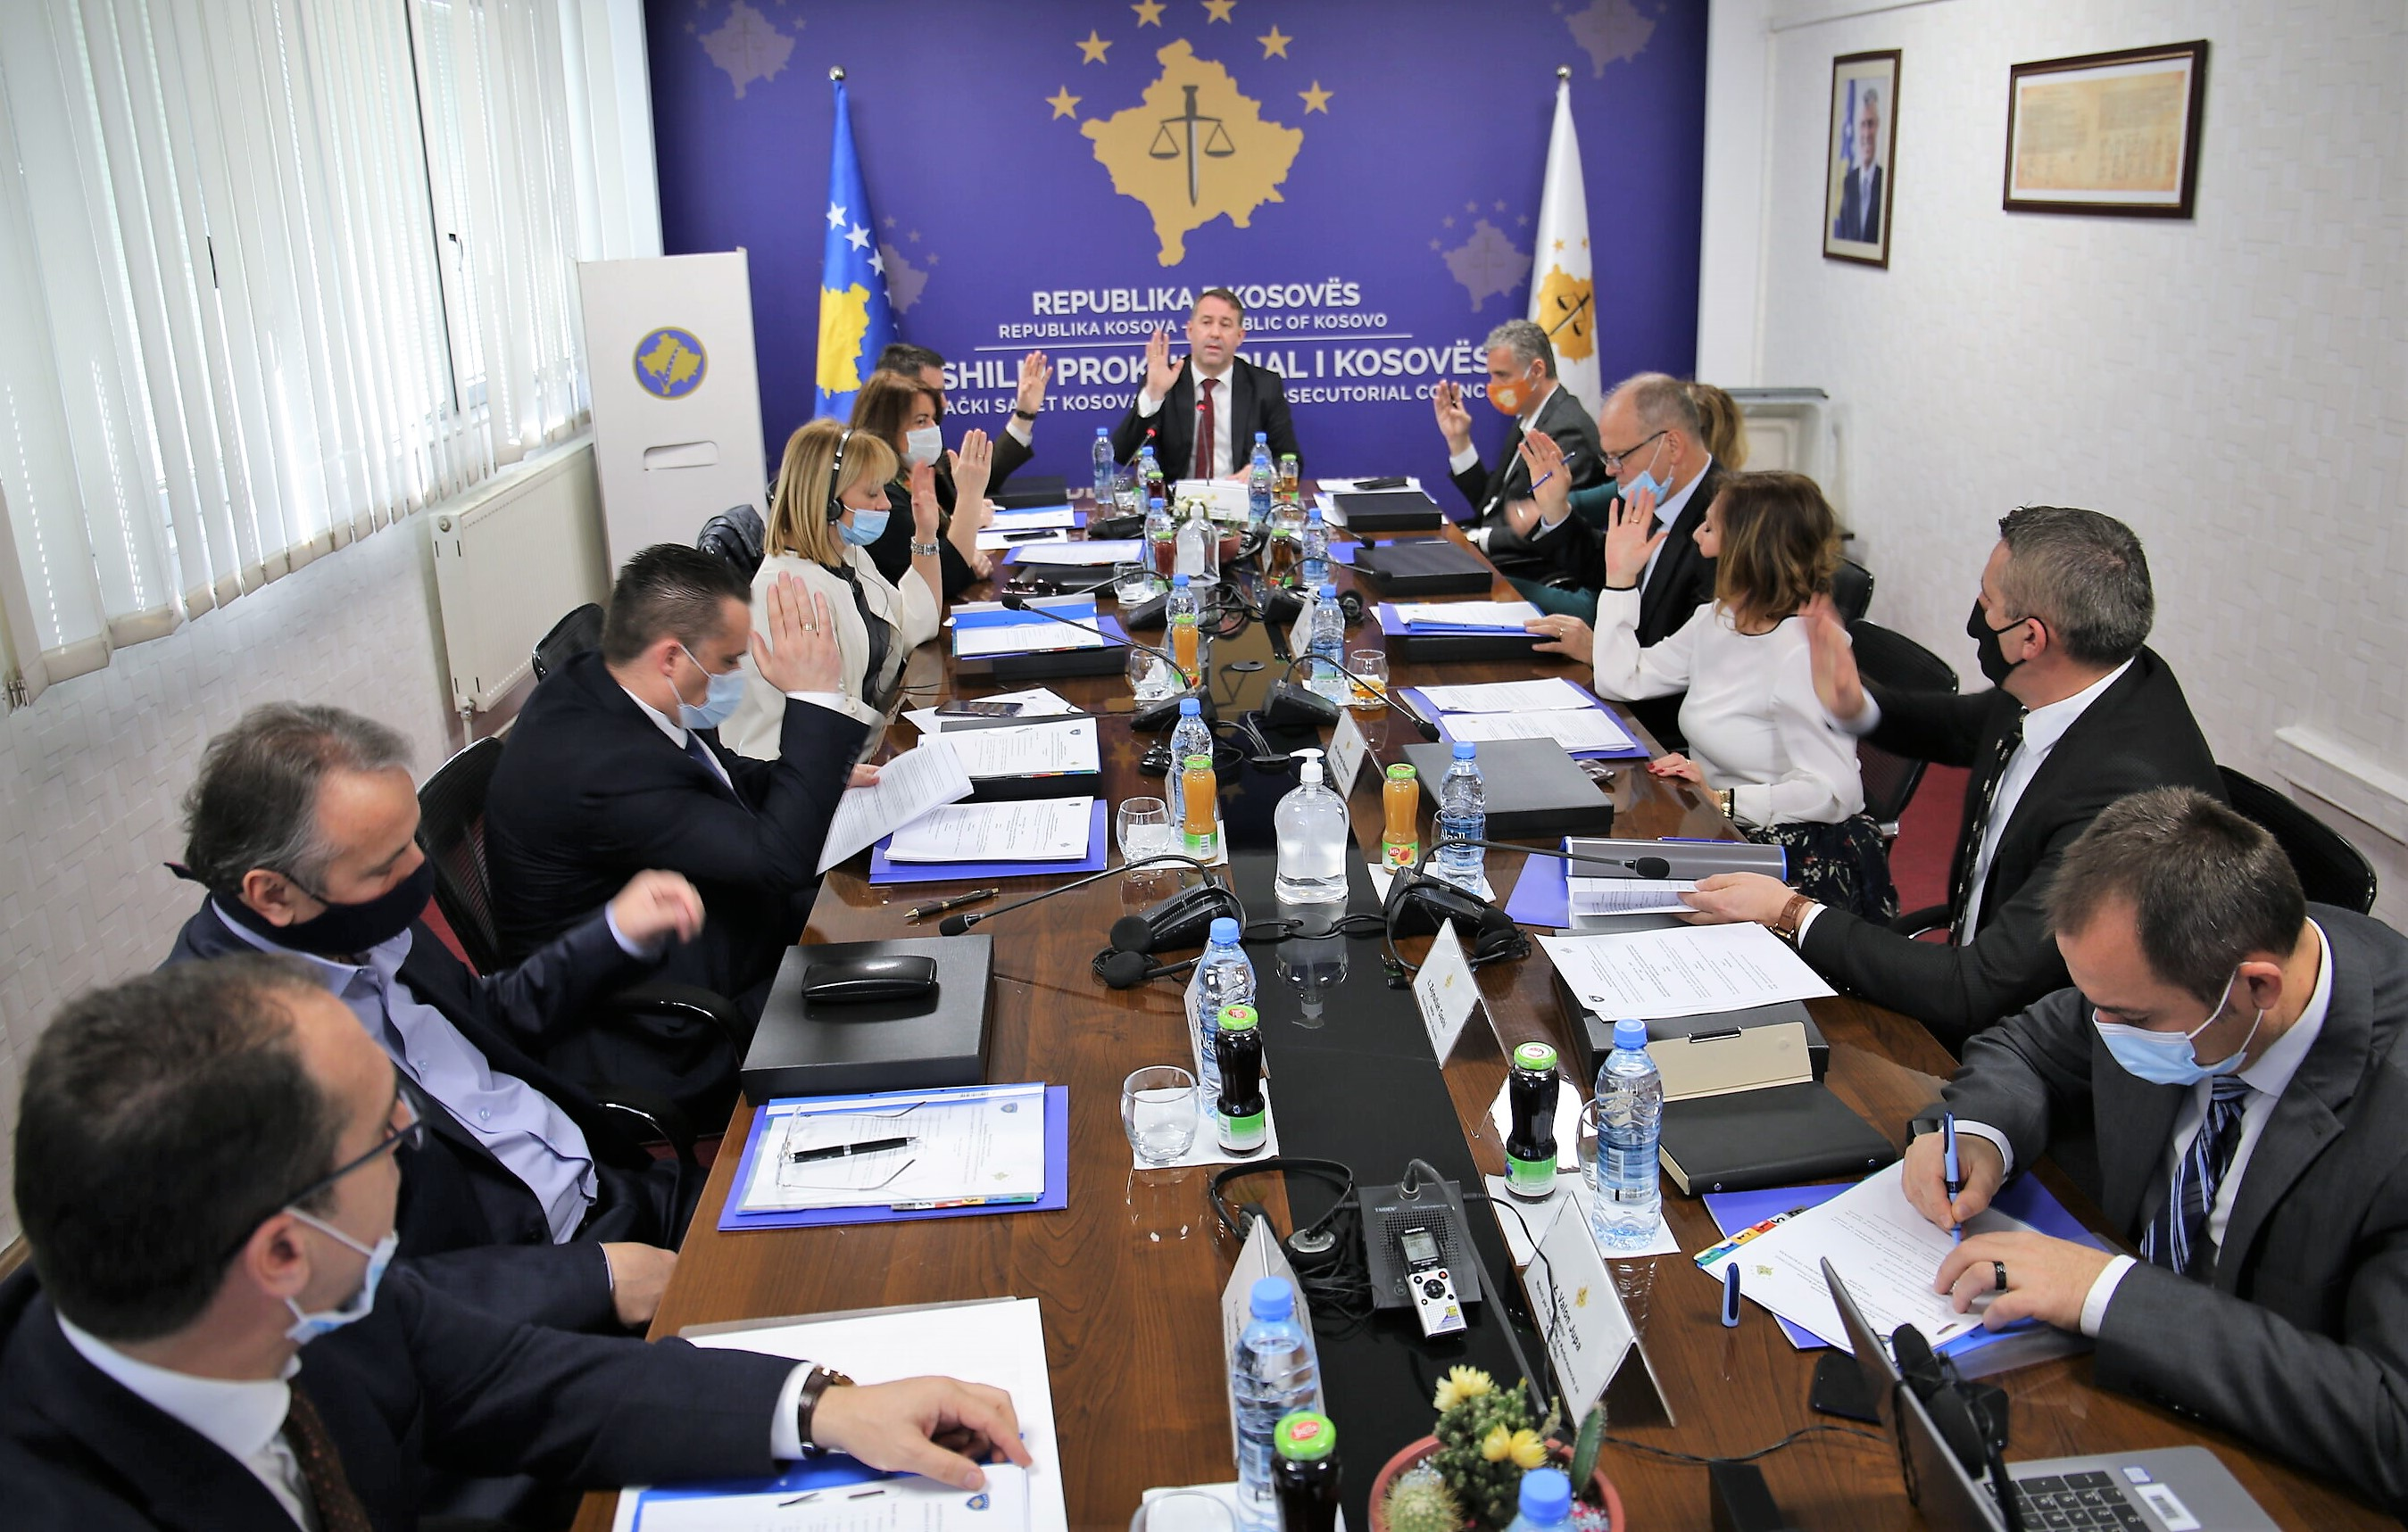 The Chief Prosecutor of the Appellate Prosecution and the Chief Prosecutors of the 6 Basic Prosecution Offices are elected